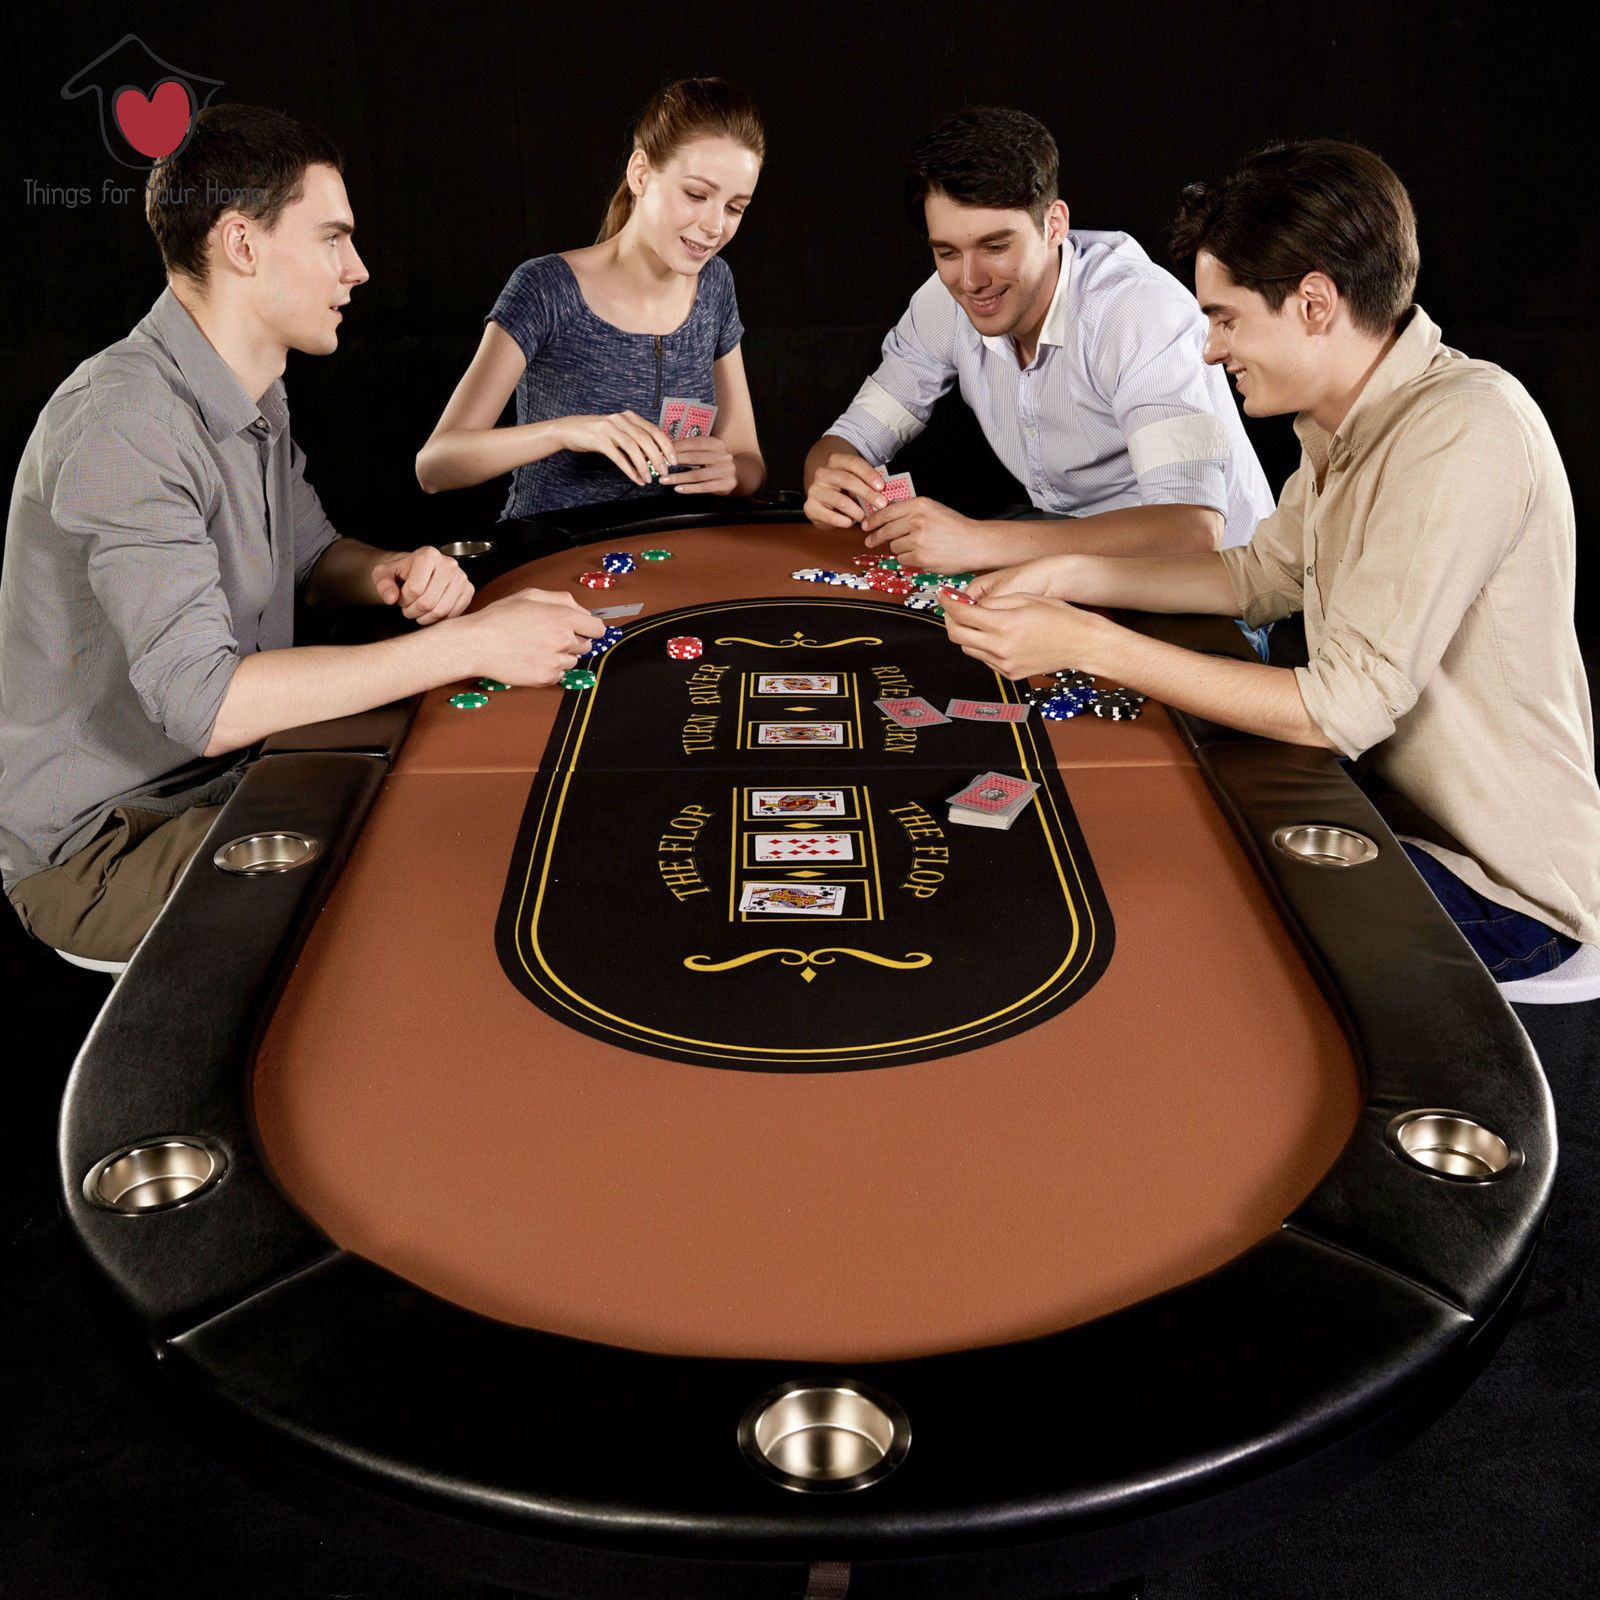 Poker Table Folding Portable Steel Cup Holders 10 Players Foldable Cushioned Best Pricing Free Shipping High Quality Pok Poker Table Poker Play Table